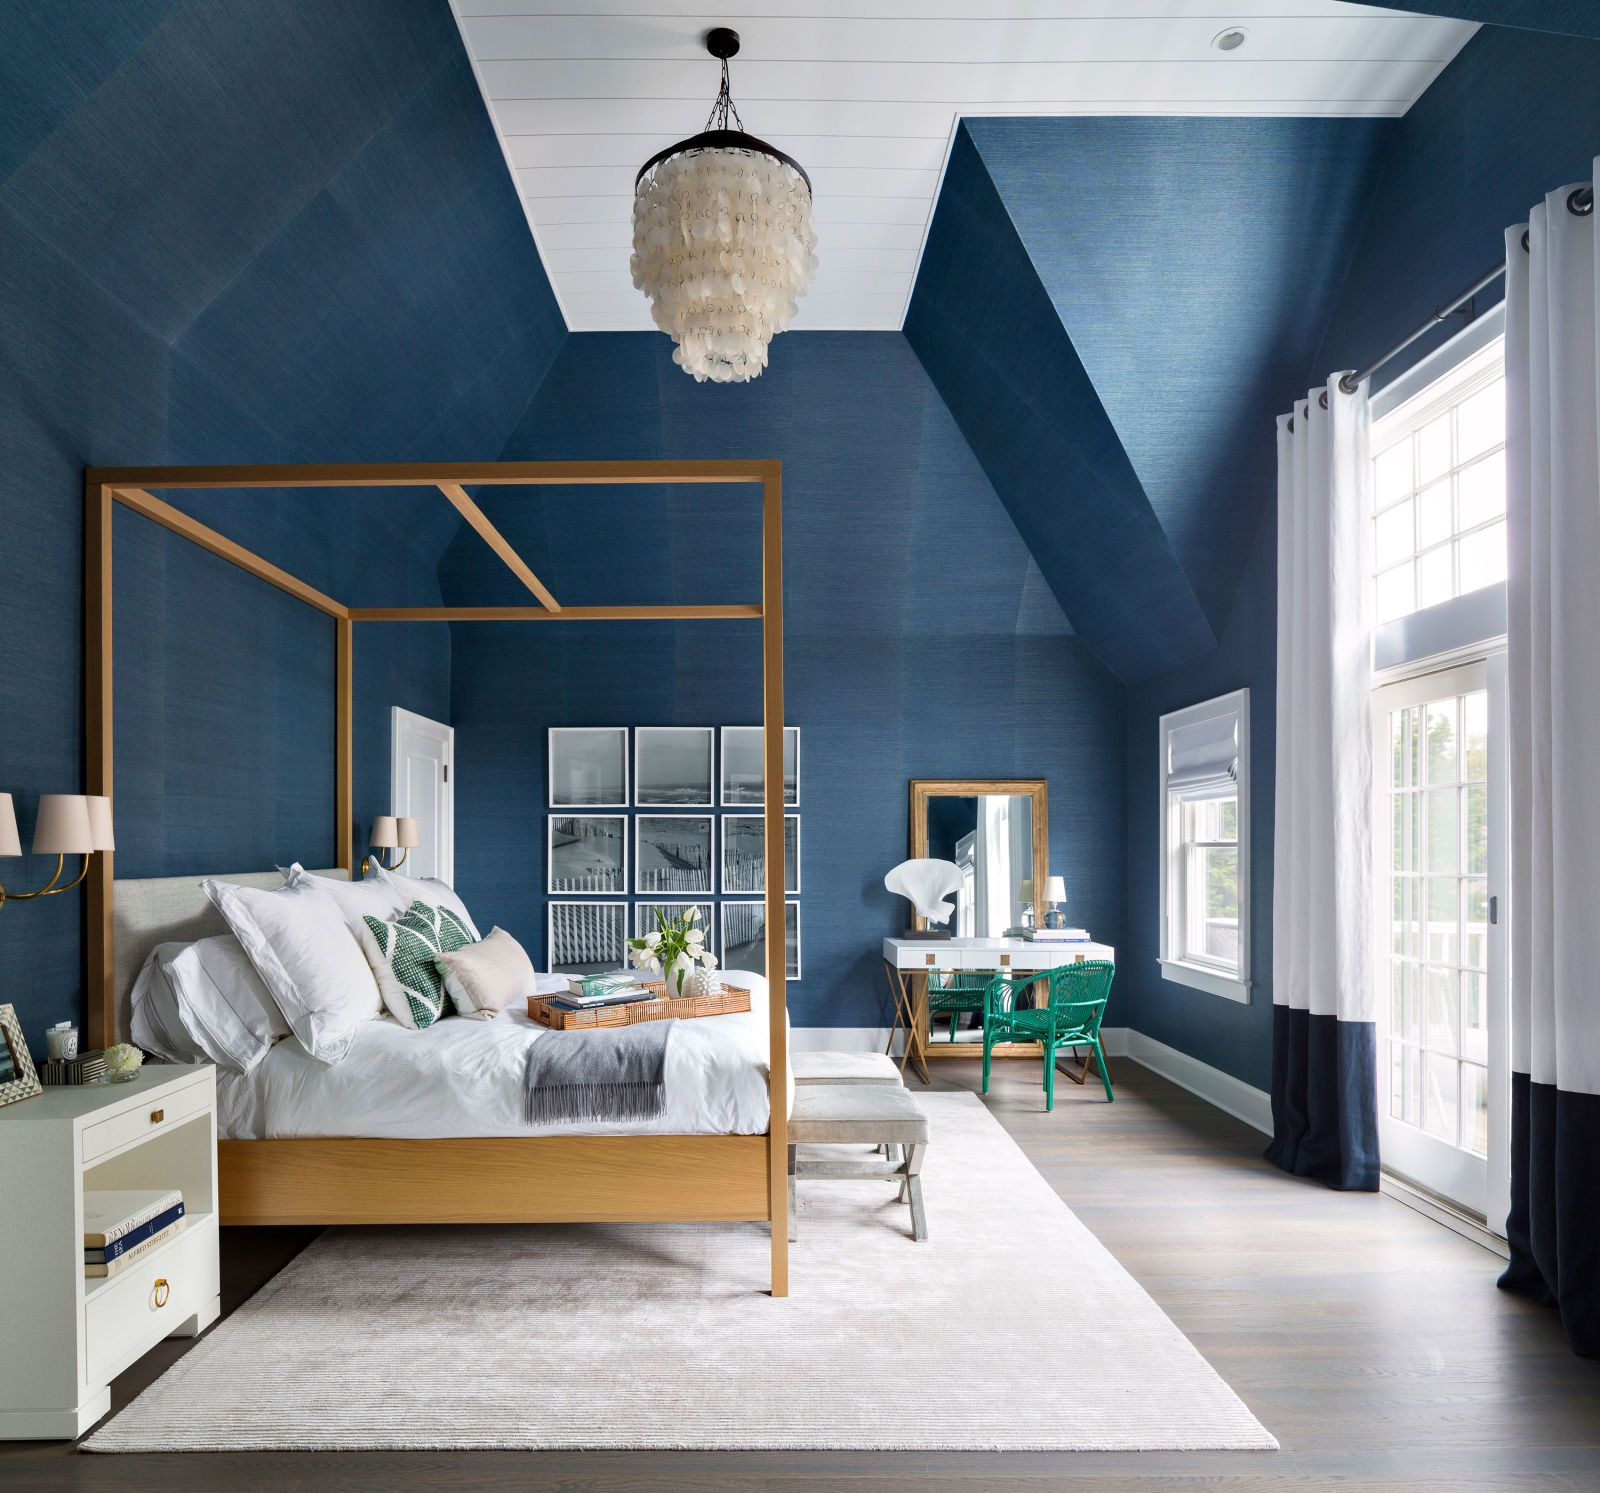 Navy Grasscloth Wallpaper And Gold Rivets Mirror: HOUSE TOUR: A Bland Summer Home Is Transformed Into A